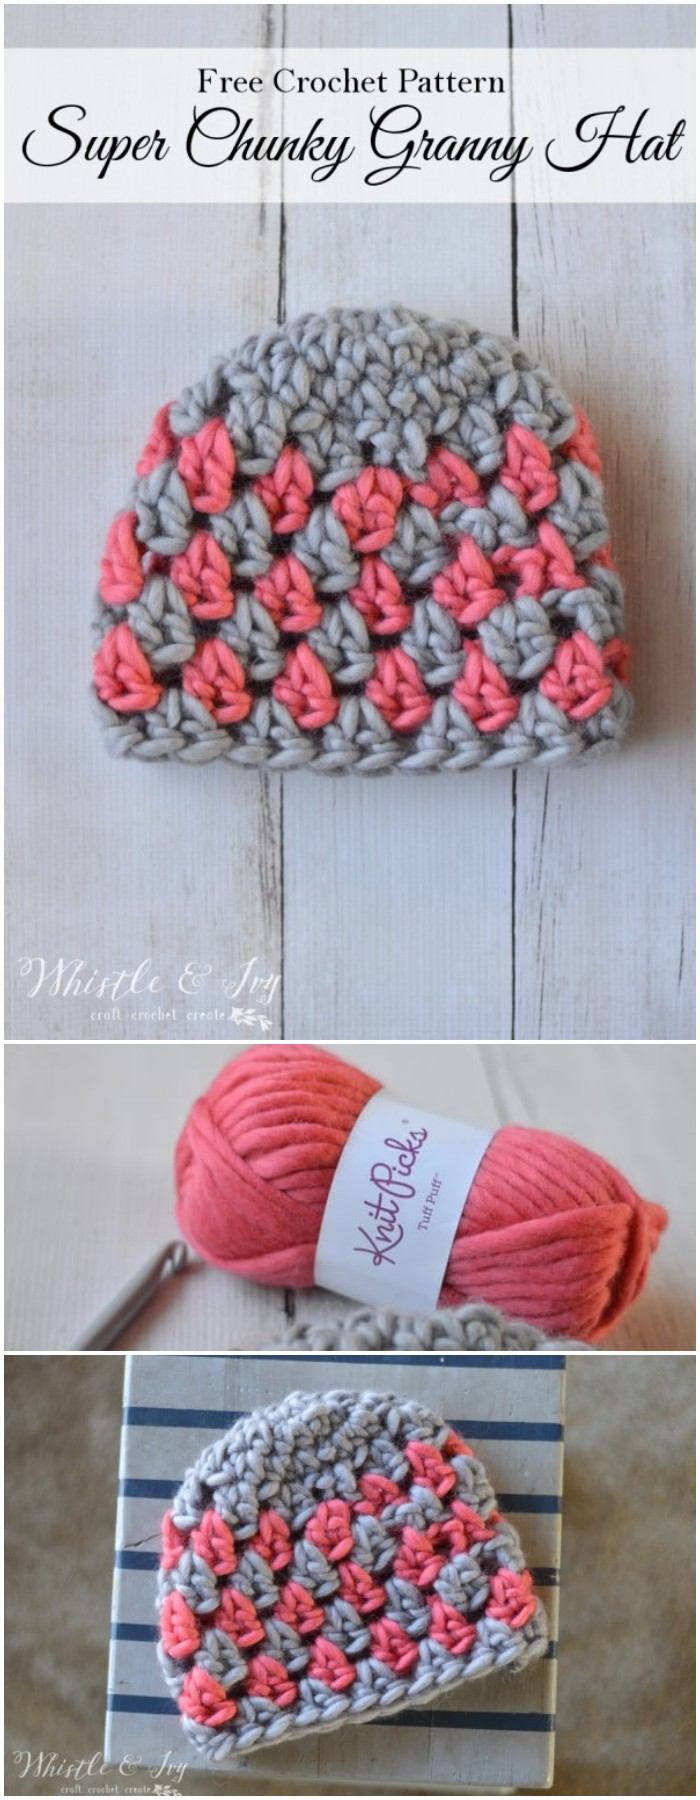 Super Chunky Granny Stitch Hat